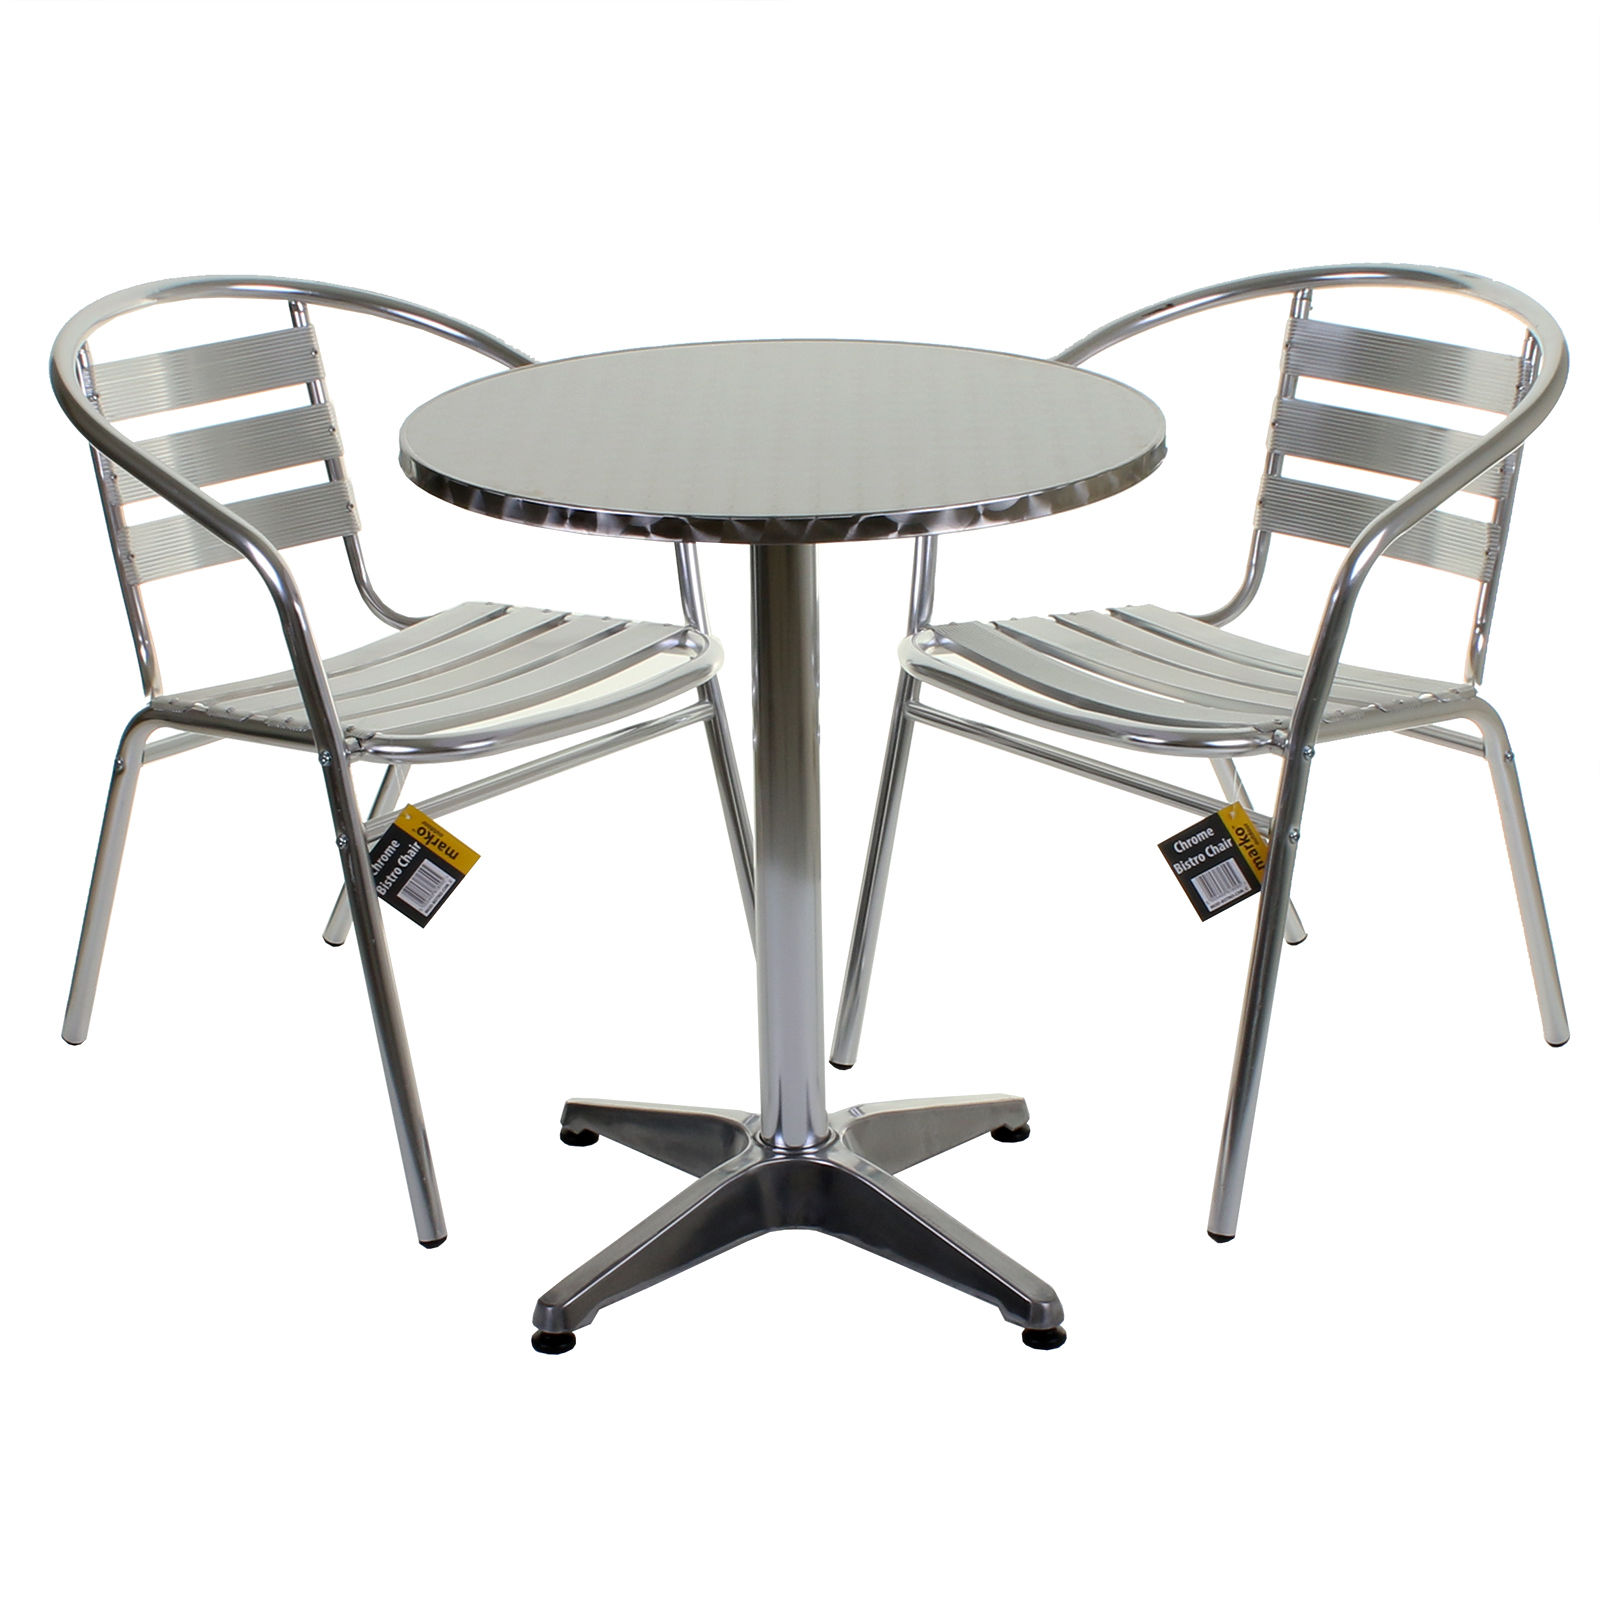 aluminium lightweight chrome bistro sets round square tables stacking chairs ebay. Black Bedroom Furniture Sets. Home Design Ideas